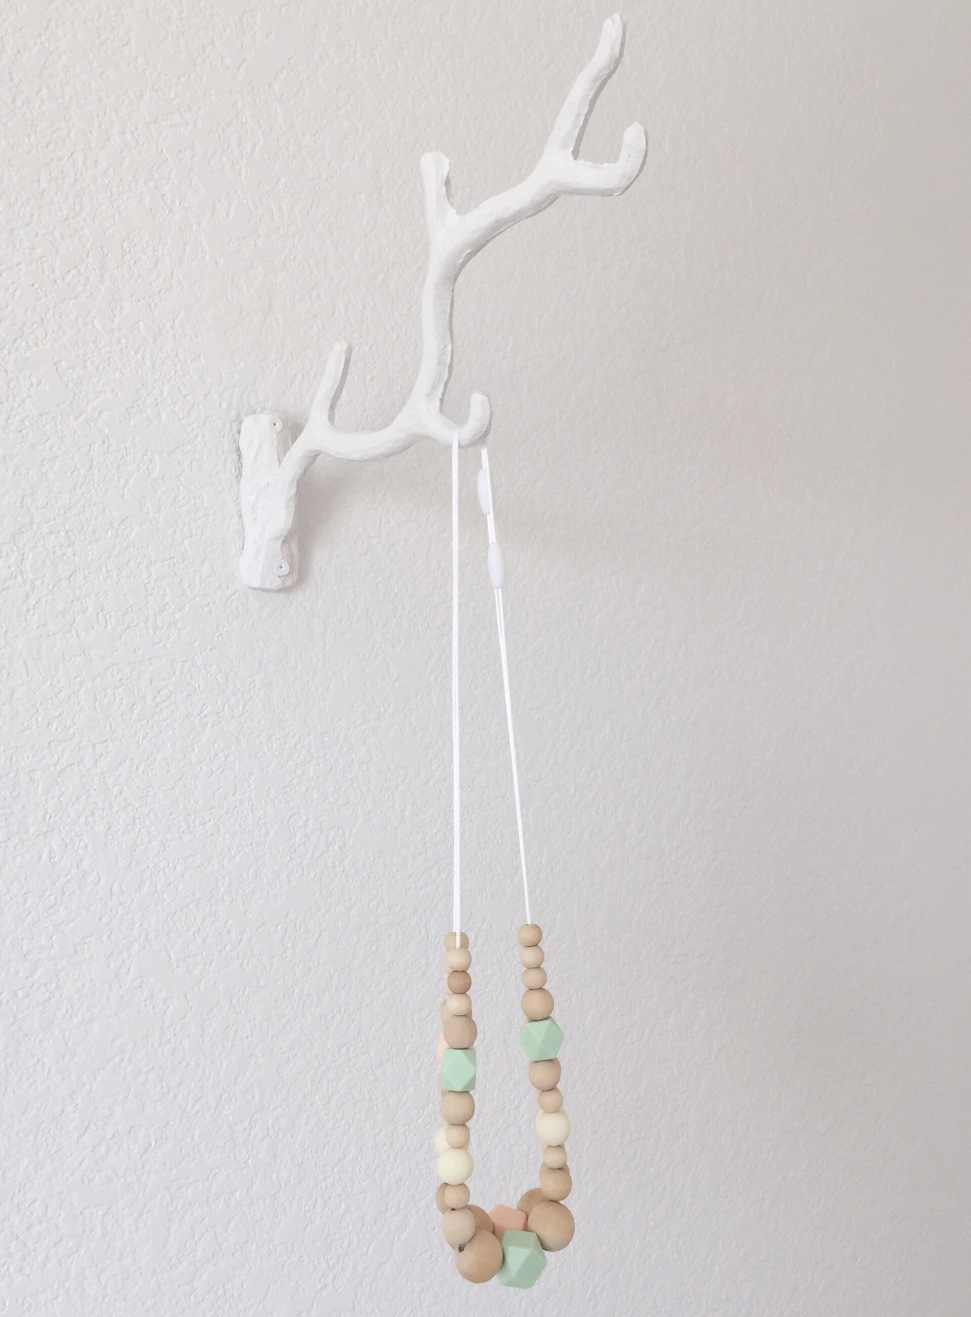 Teething Necklaces - The Vintage Blonde